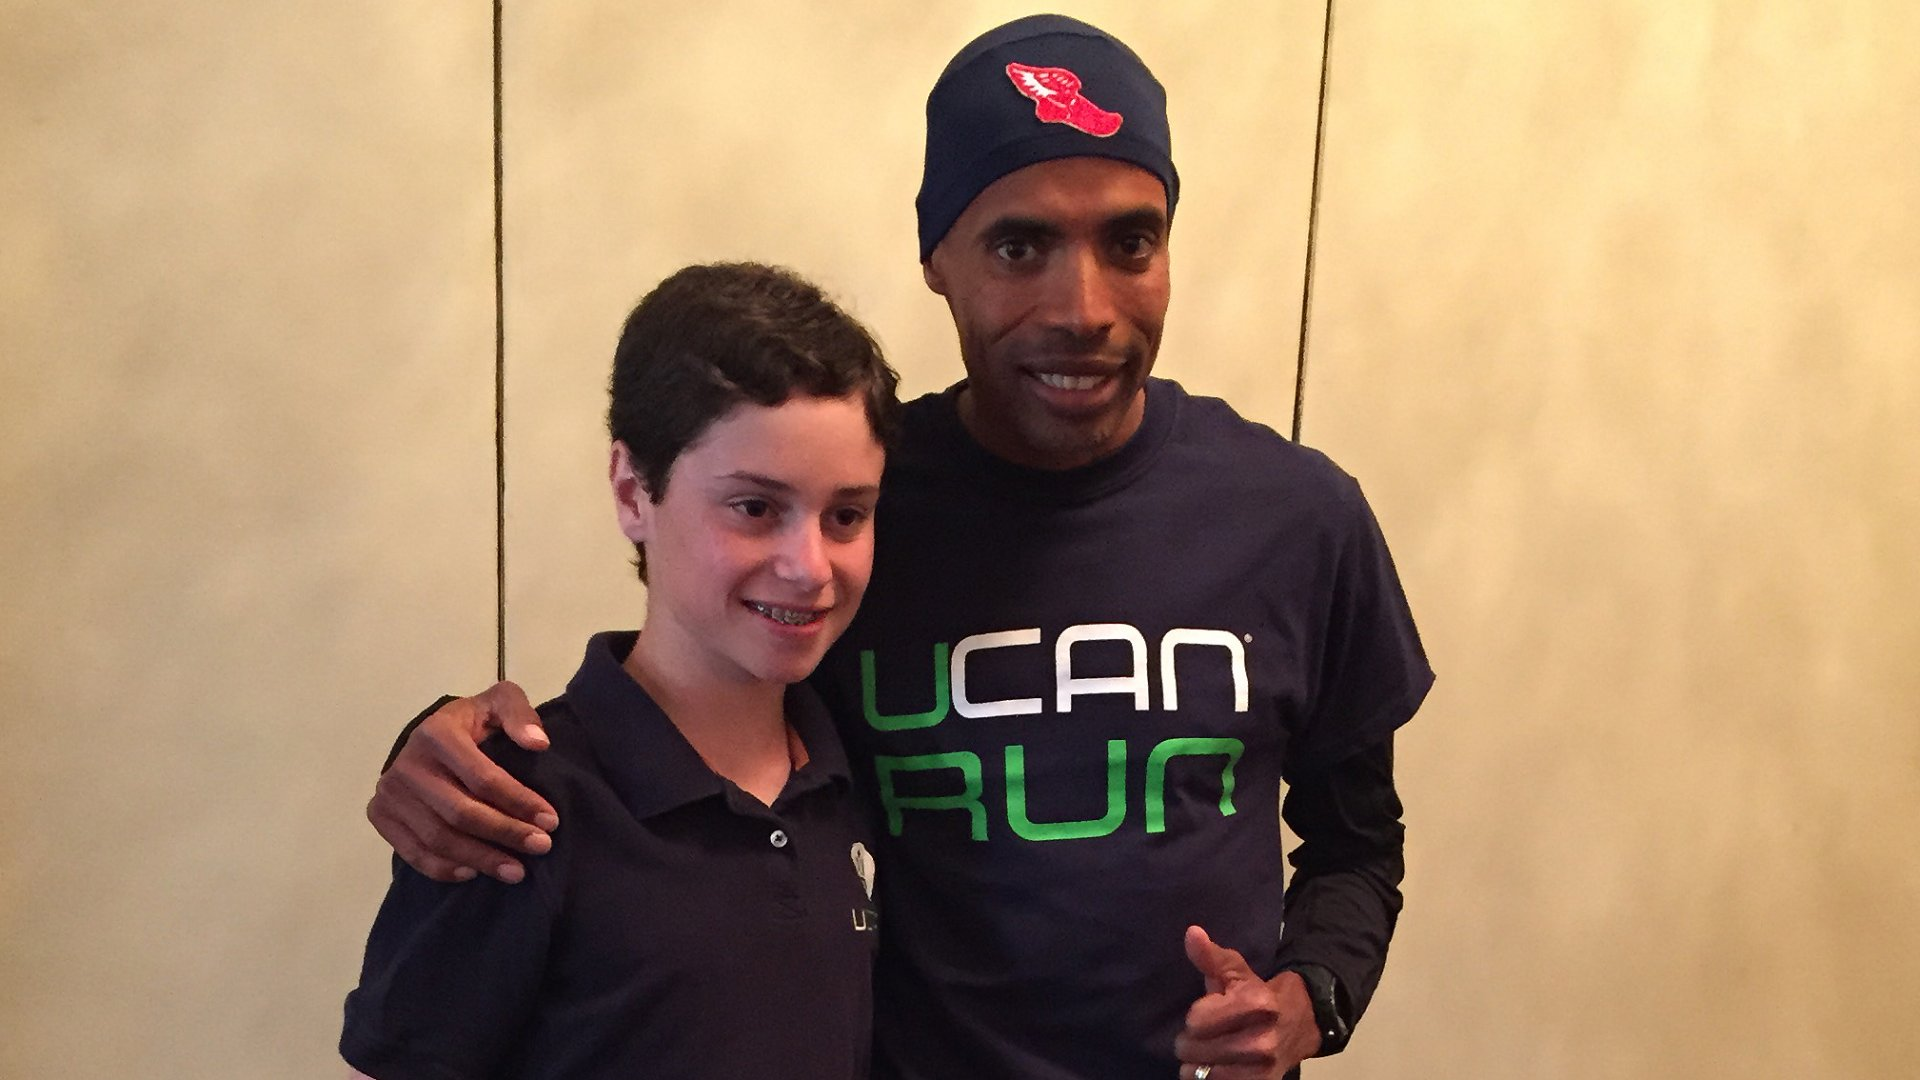 One of Generation's UCAN's biggest influencers is Meb Keflezighi, right, winner of the 2014 Boston Marathon. Here he's pictured with Jonah Feldman, 13. When Jonah was a boy, he was diagnosed with a rare metabolic disorder. Nutritional research on how to treat that disorder led to UCAN's flagship SuperStarch product--which Keflezighi now uses to train for marathons.